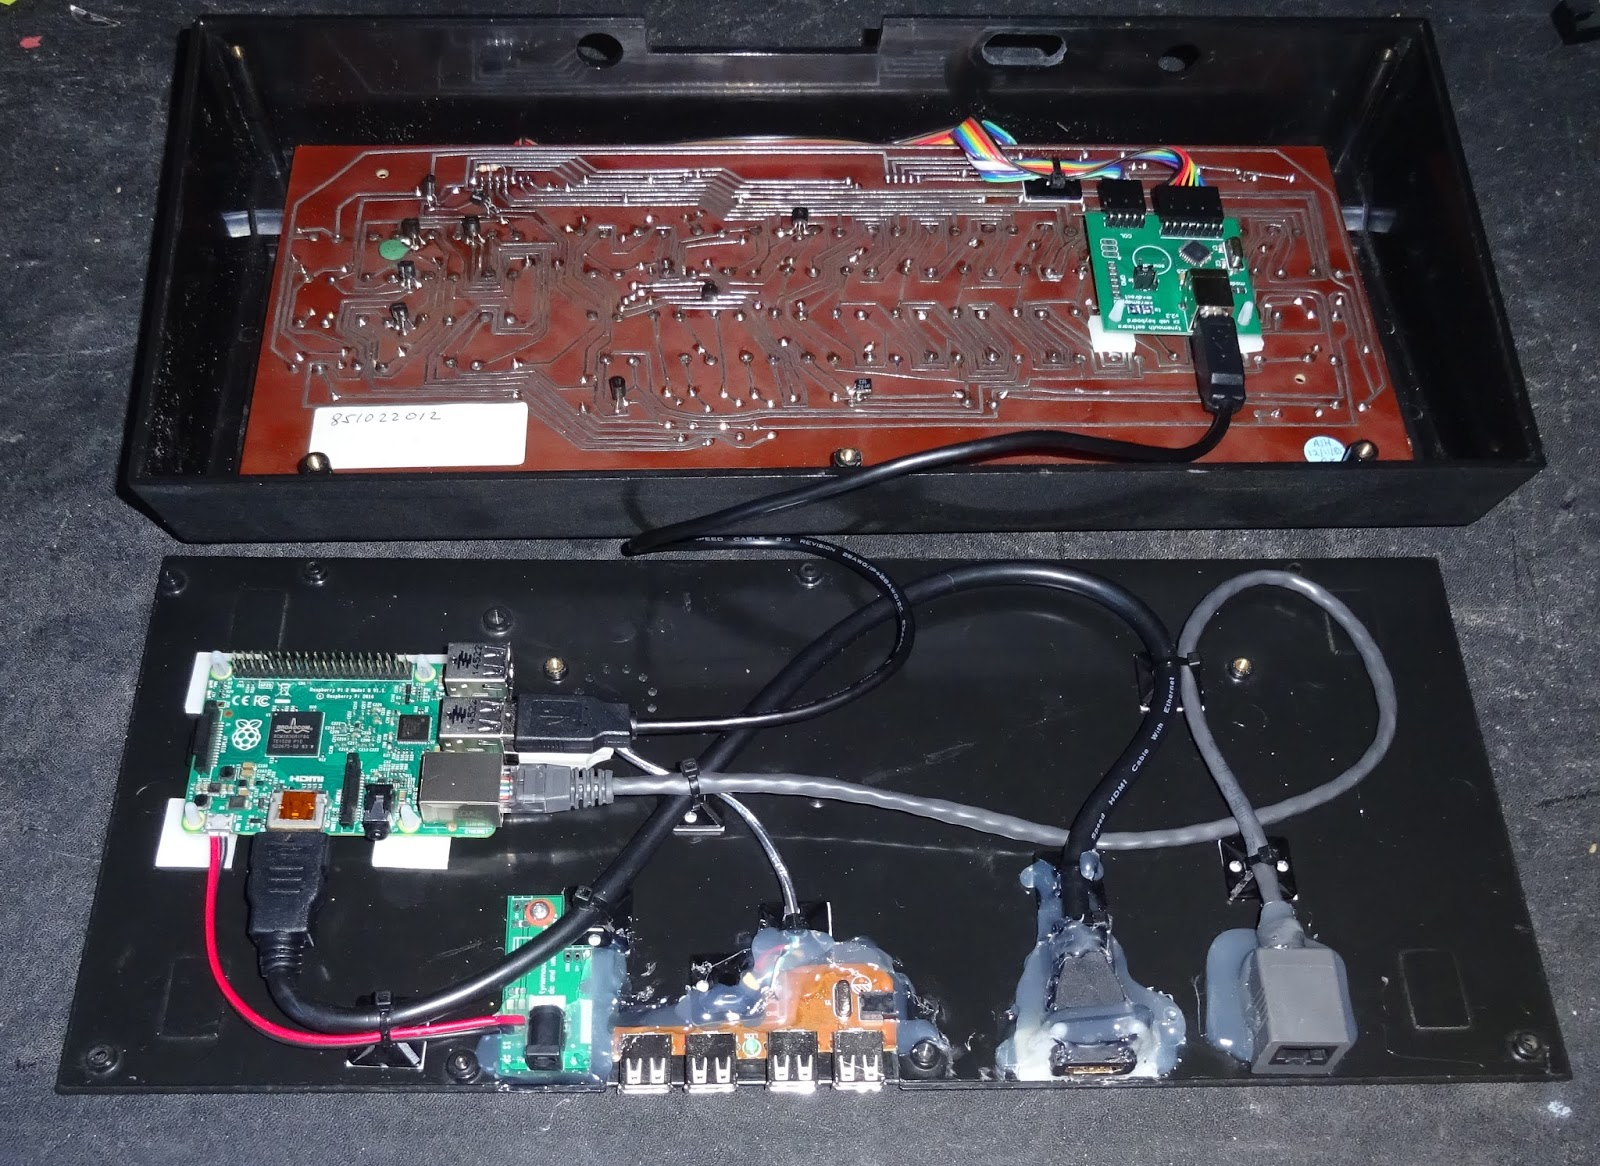 tynemouth software day 8 zx spectrum lmt 68fx2 case with pi. Black Bedroom Furniture Sets. Home Design Ideas